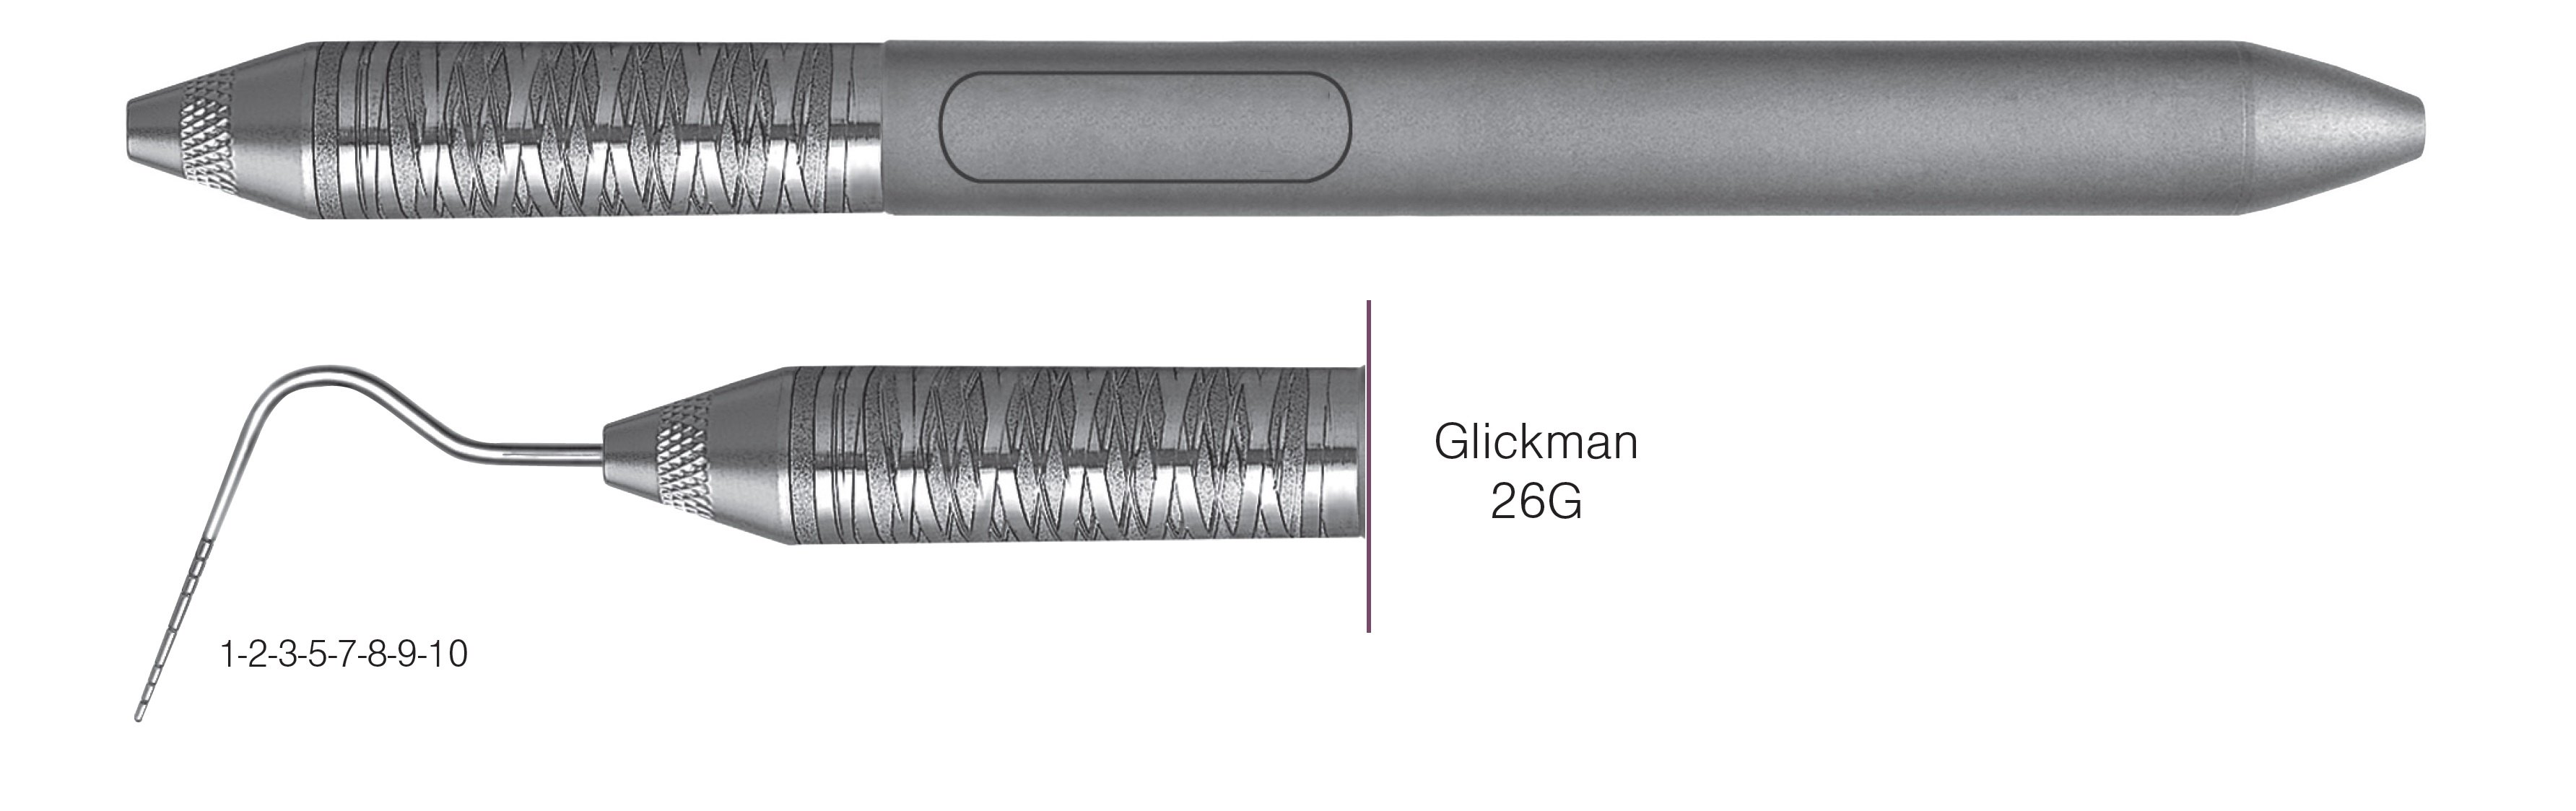 HF-P26G6-6, SINGLE-ENDED PROBES Glickman 26G, Black markings, 1-2-3-5-7-8-9-10 mm, Handle Satin Steel, Aluminum Titanium Nitride (AlTiN) Coating, Single End